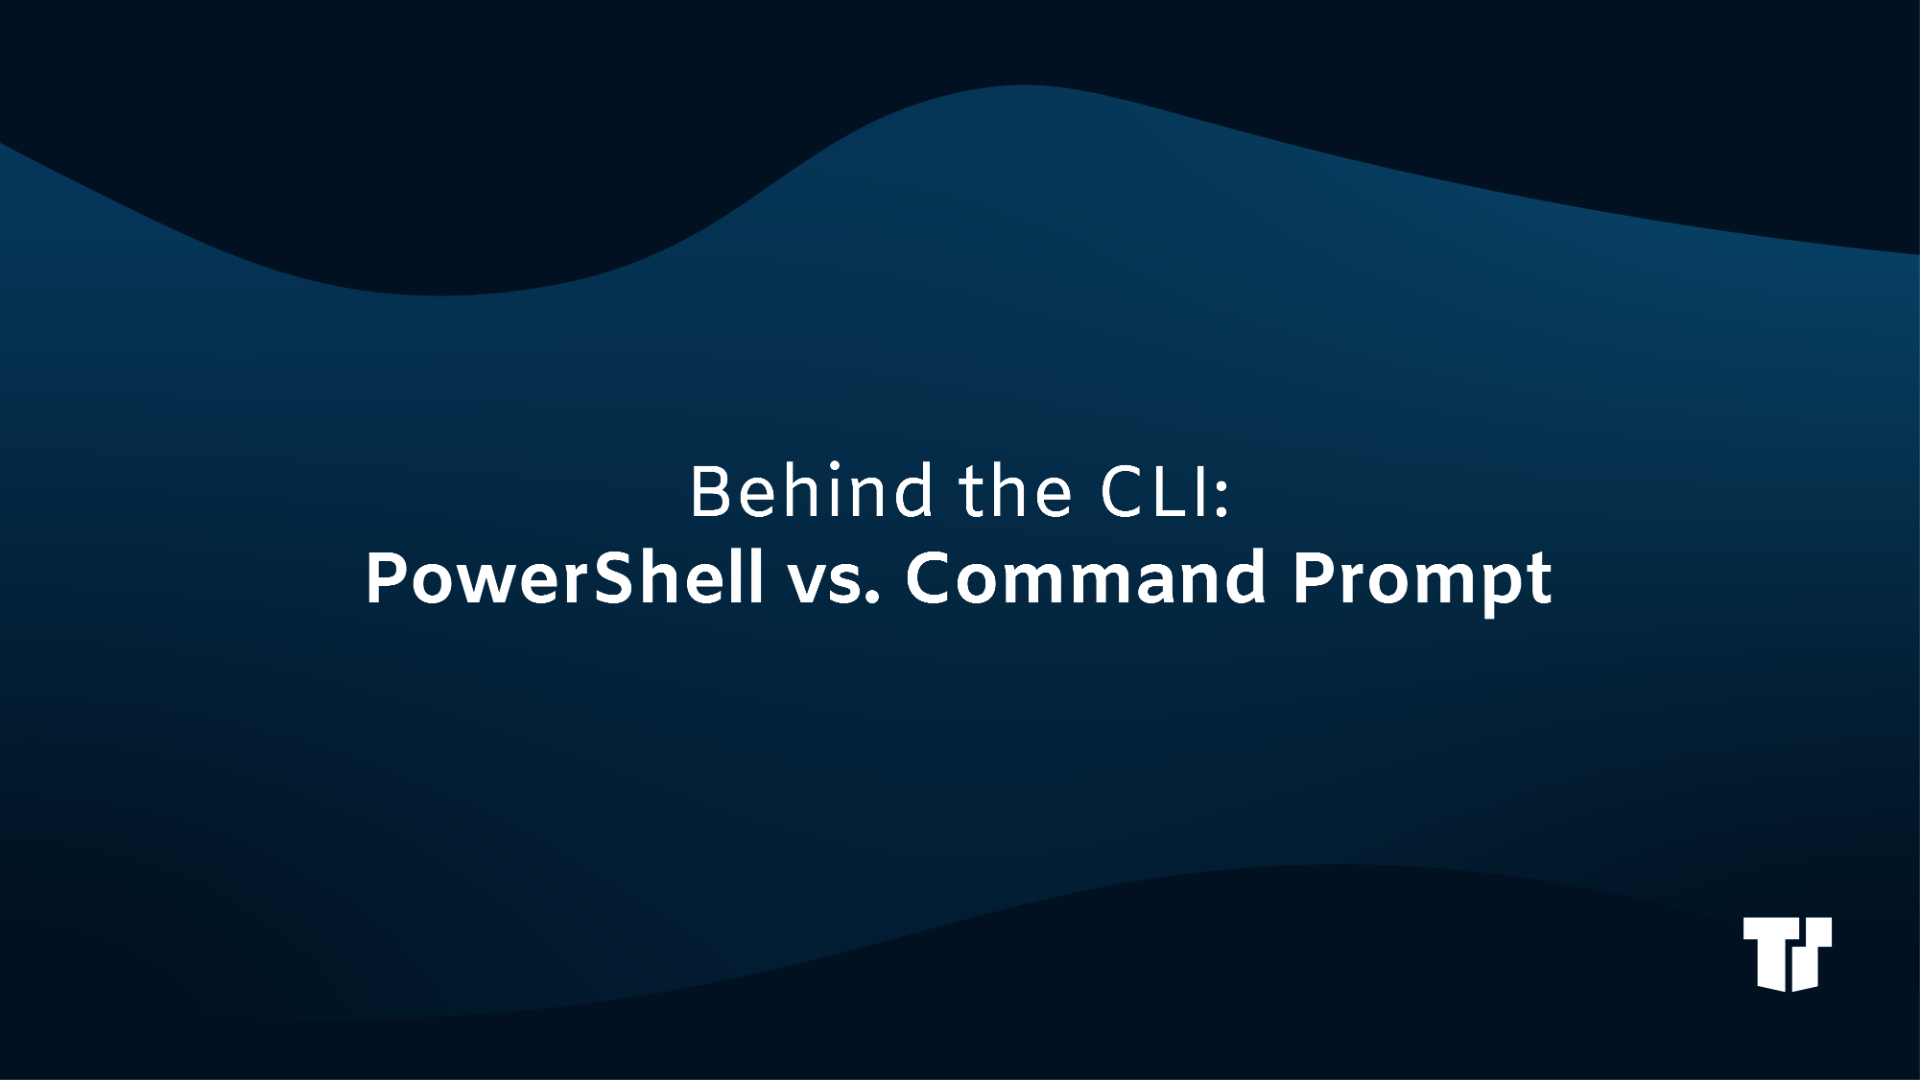 Behind the CLI: PowerShell vs. Command Prompt cover image